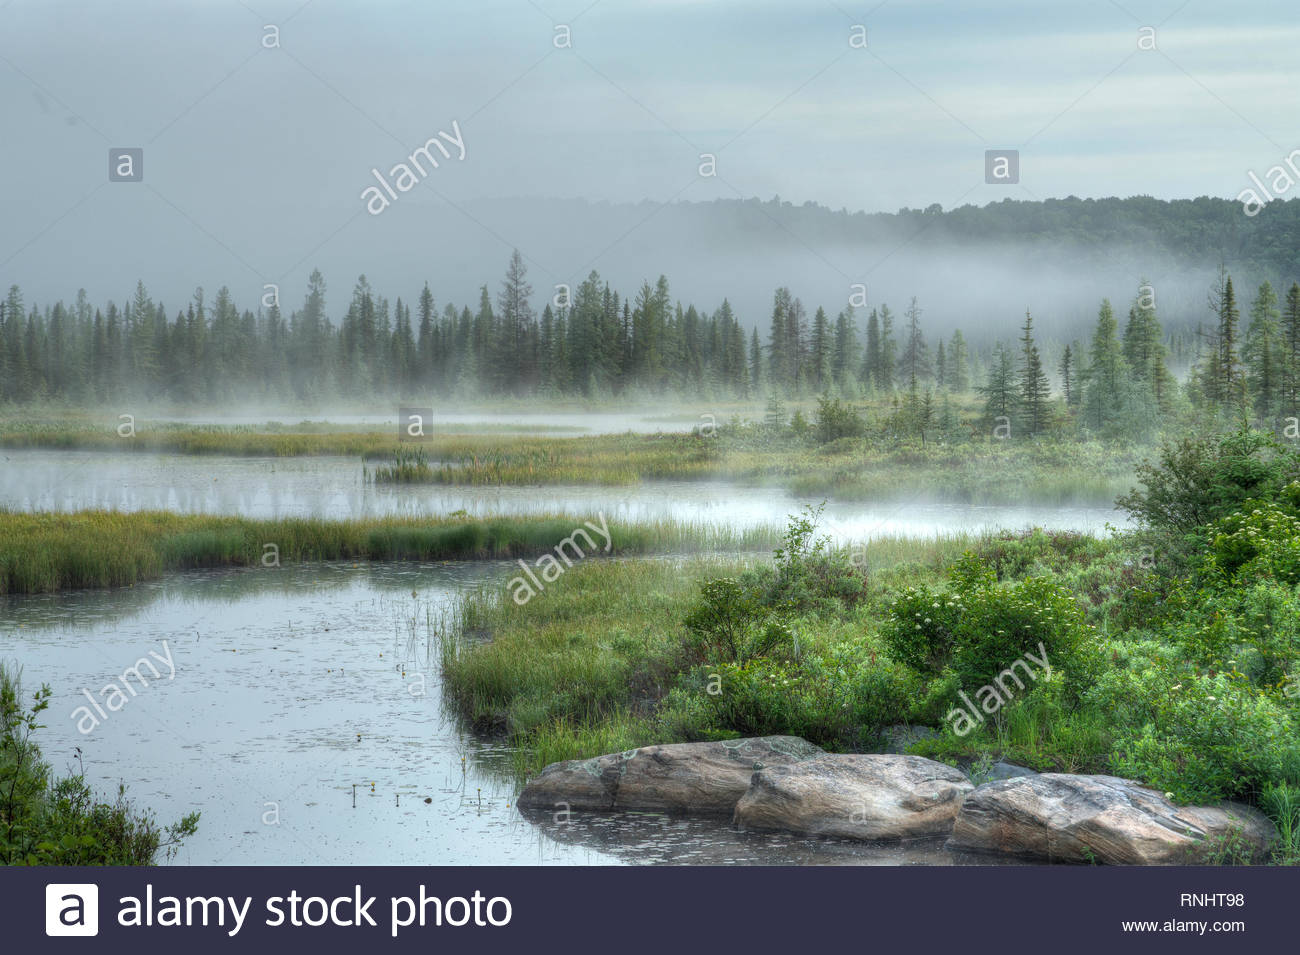 Forest hills of Maple and Tamarack trees in morning mist and fog with river twisting in foreground Opeongo Road Algonquin Park Ontario Canada - Stock Image